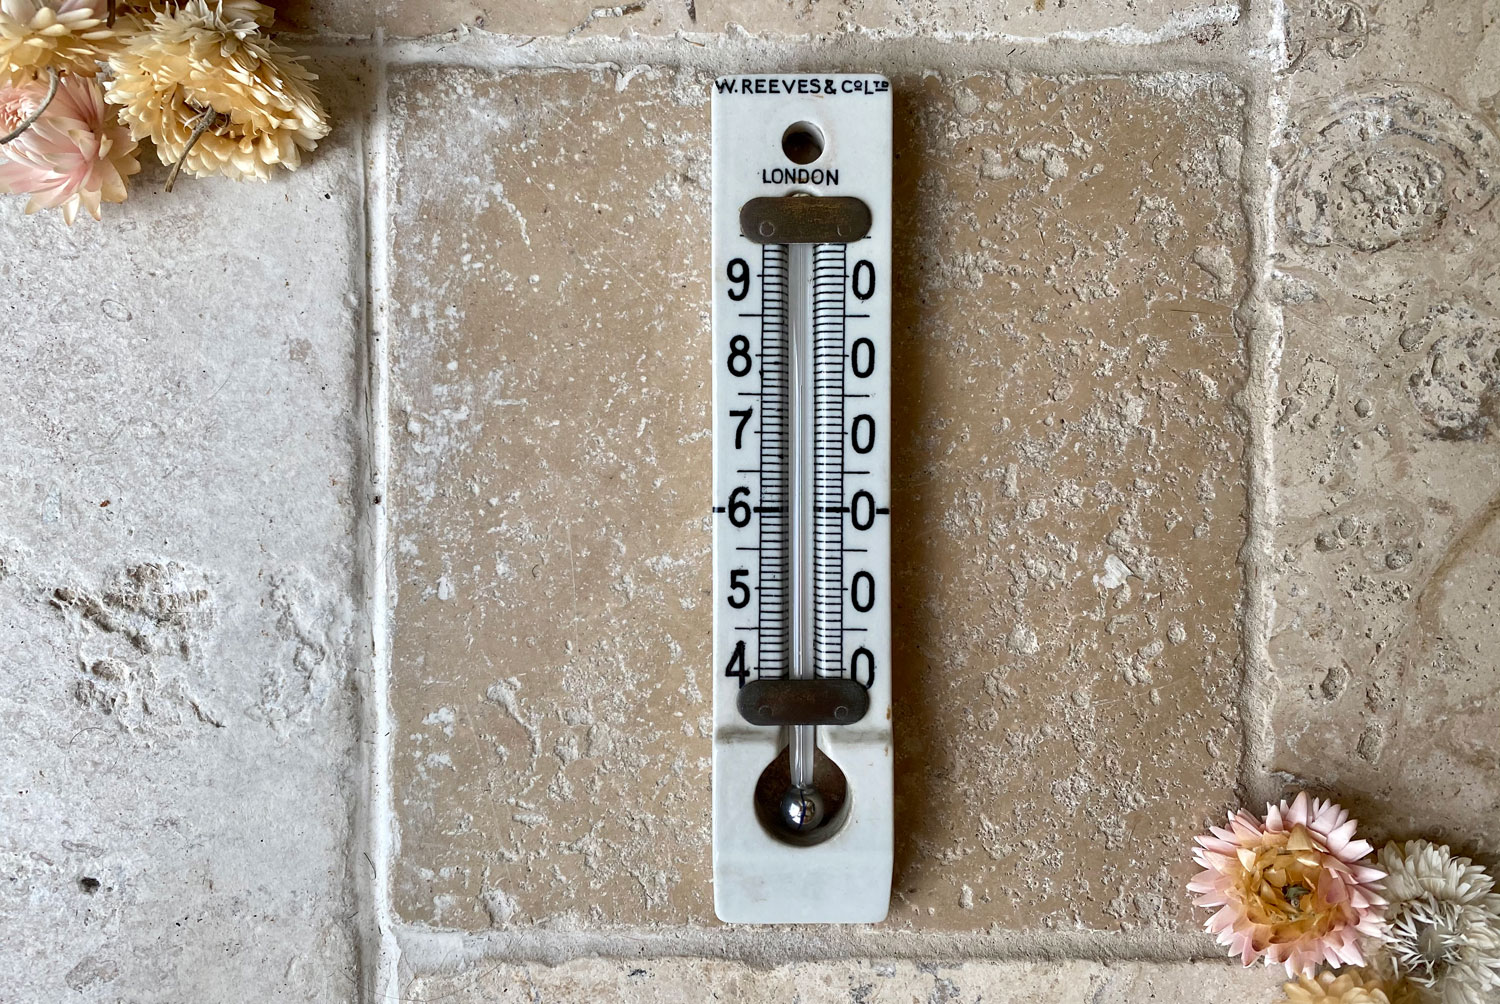 antique victorian edwardian white ironstone cellar household wall thermometer